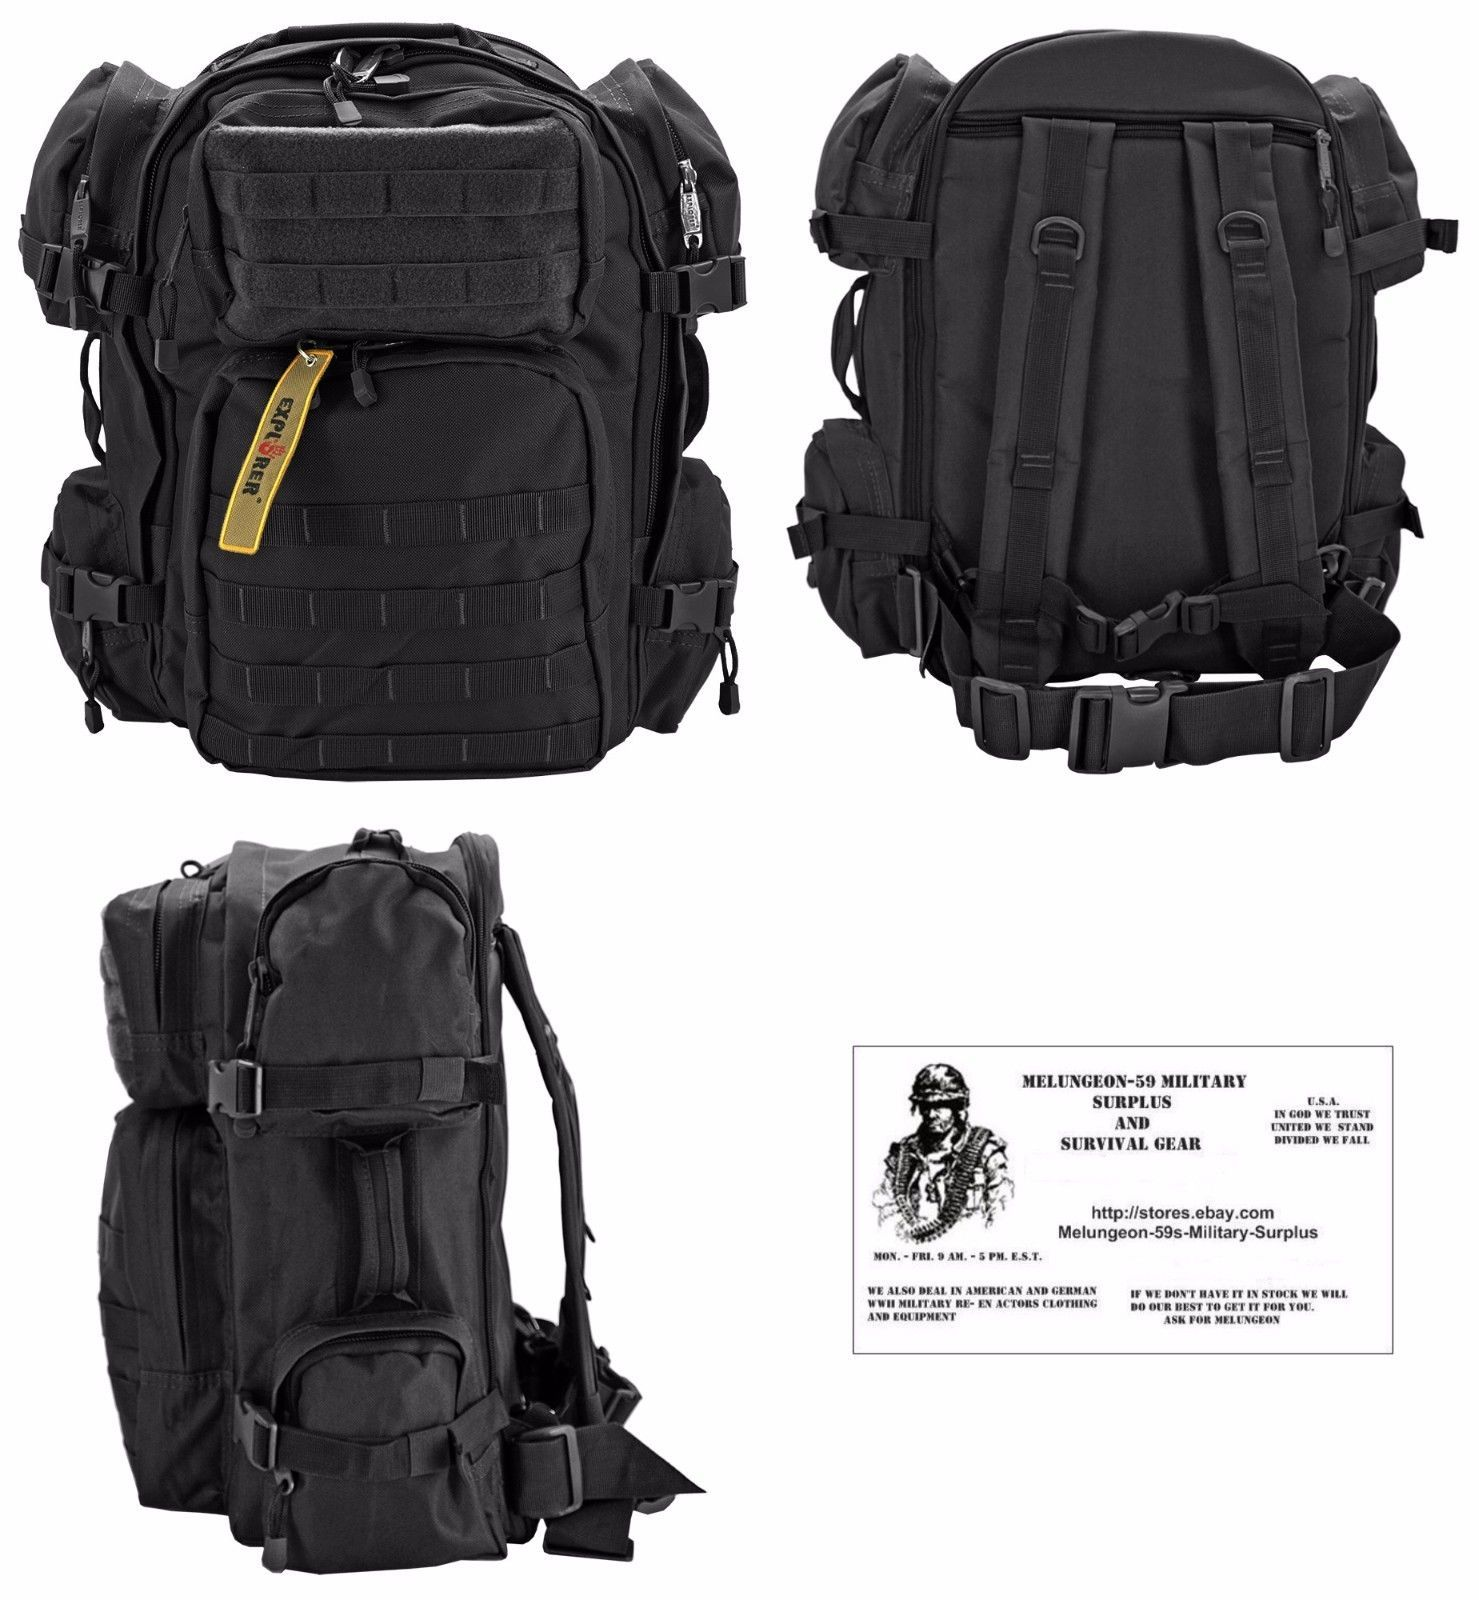 Buy MOLLE - Backpack /Bug Out Bag / Military / Survival Gear ...